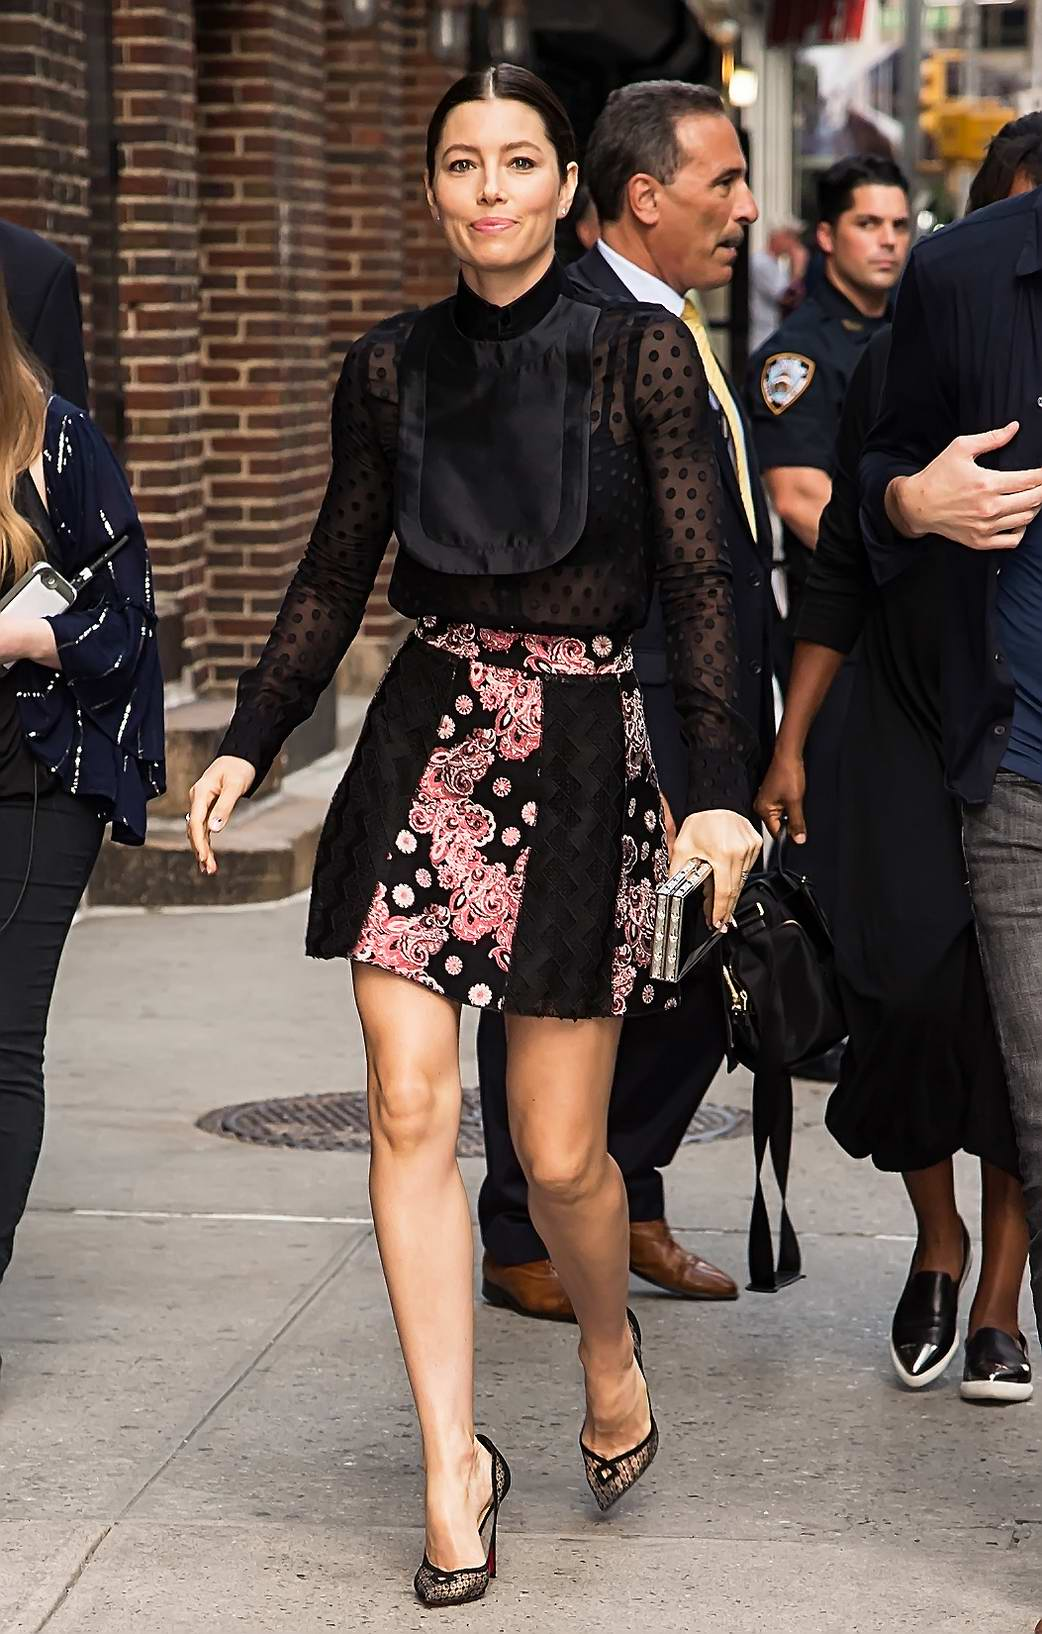 Jessica Biel arrives at The Late Show with Stephen Colbert in New York